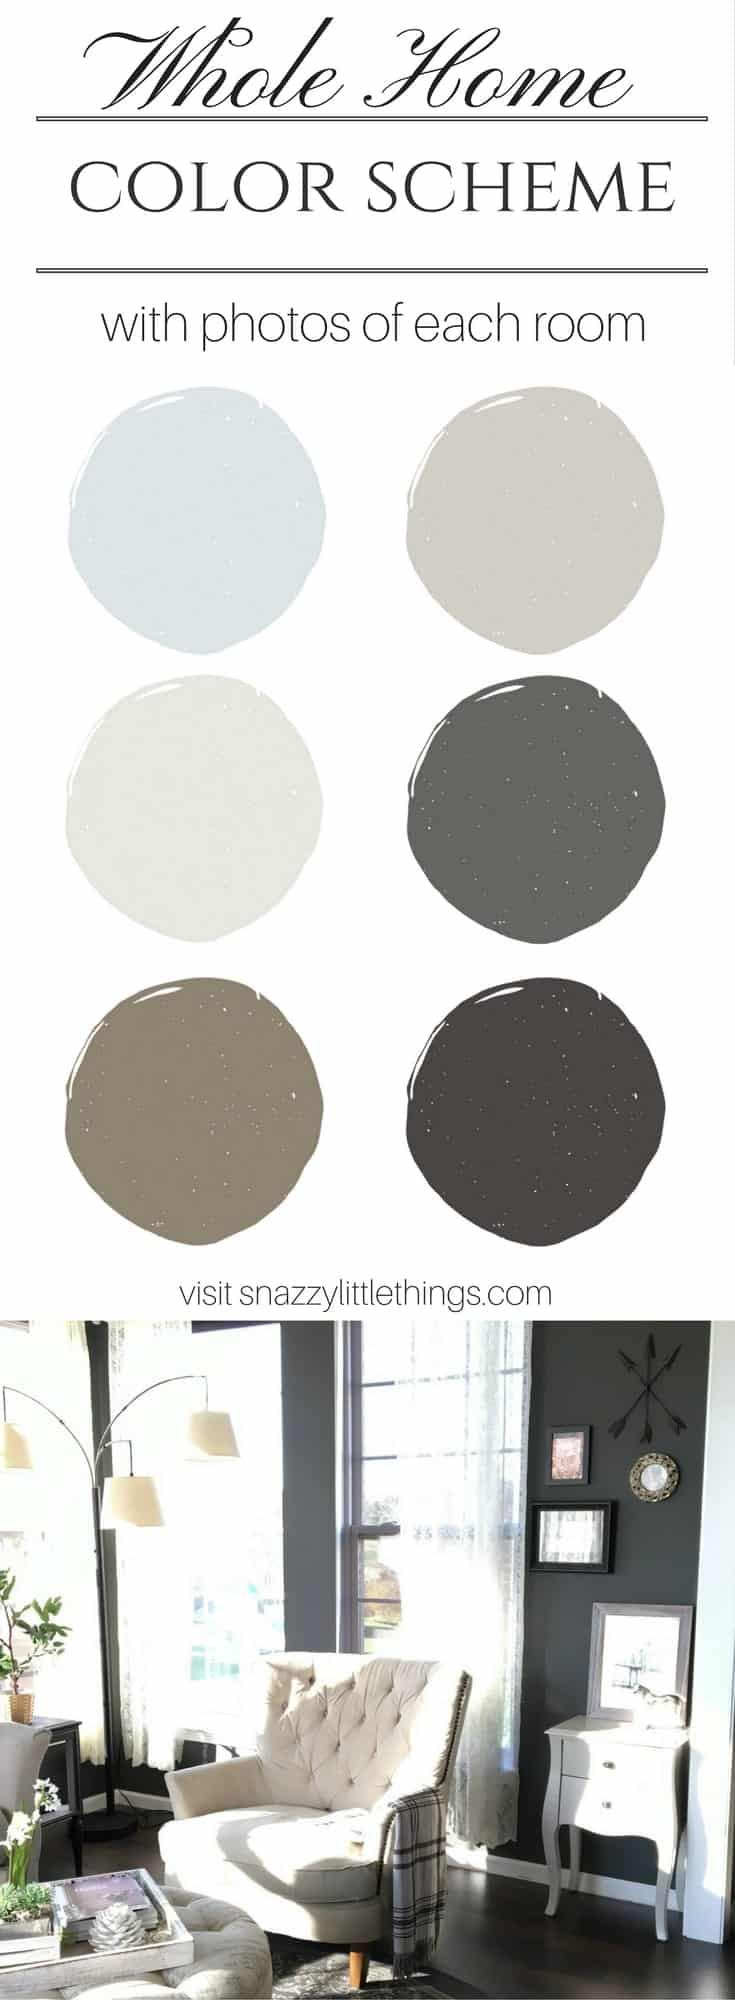 Whole Home Color Scheme by SnazzyLittleThings.com